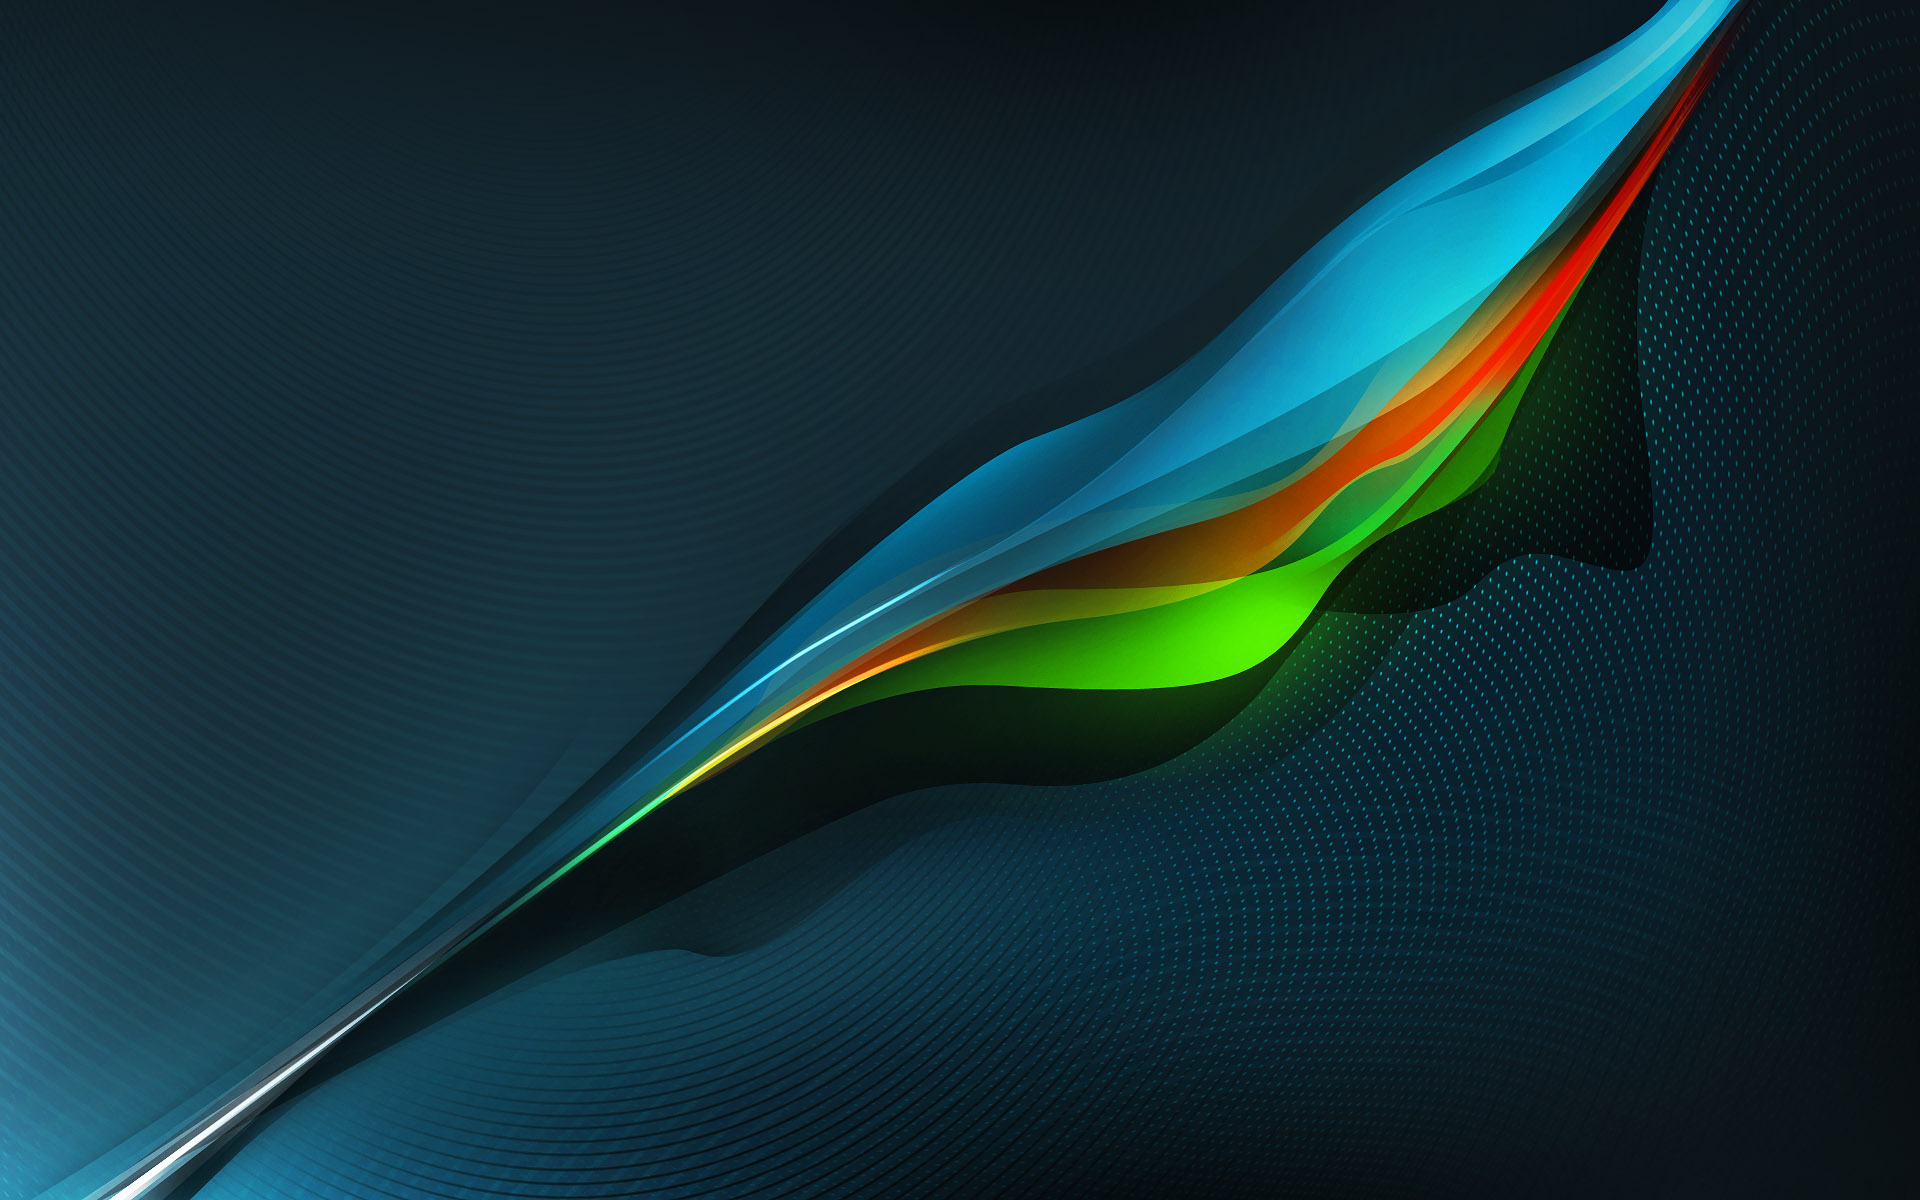 High Resolution Abstract Wallpaper: High Resolution Interface Wallpapers